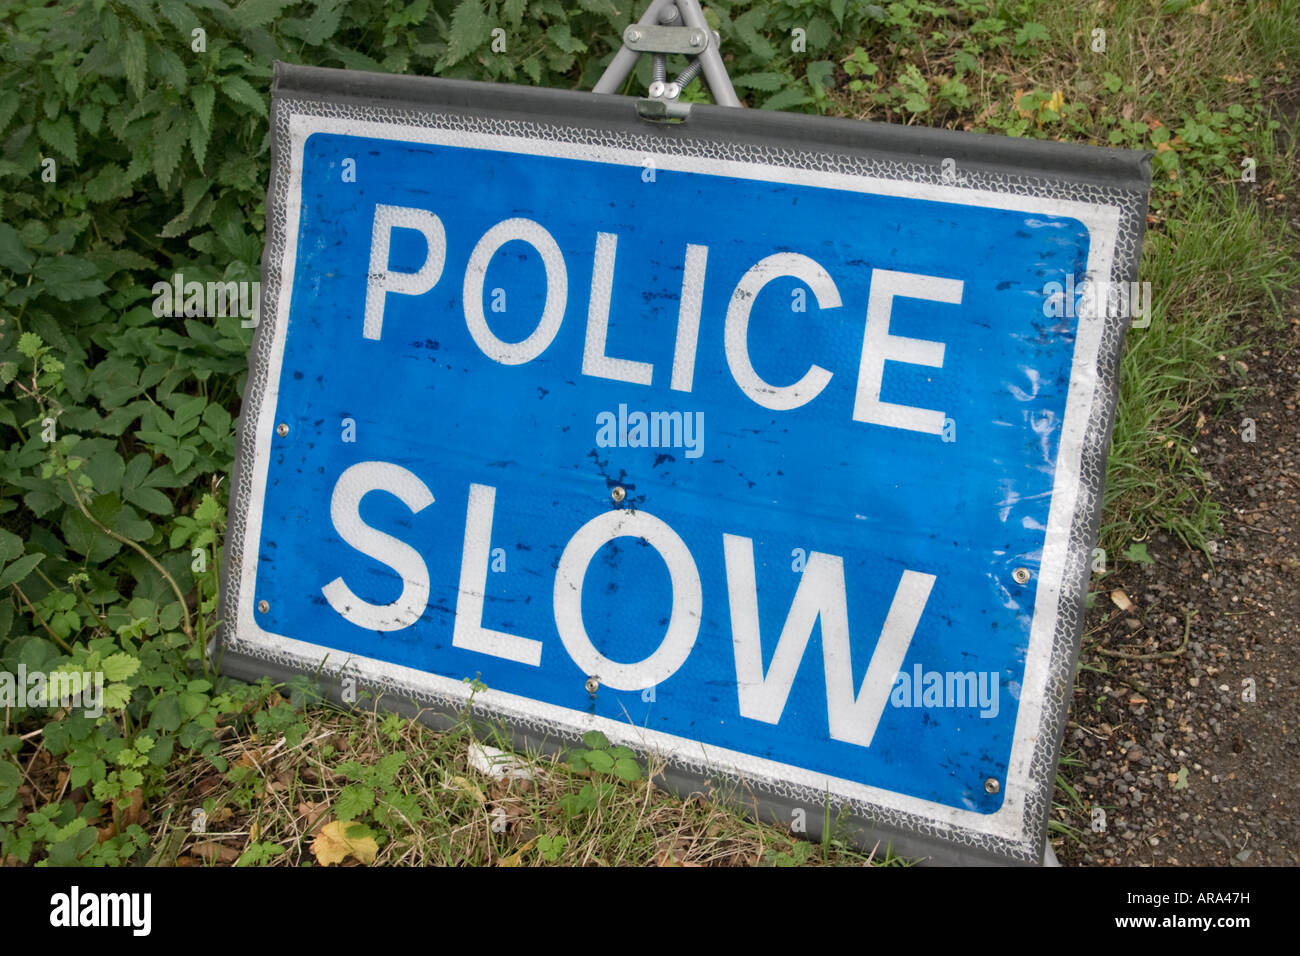 Police Notice Board Stock Photos Amp Police Notice Board